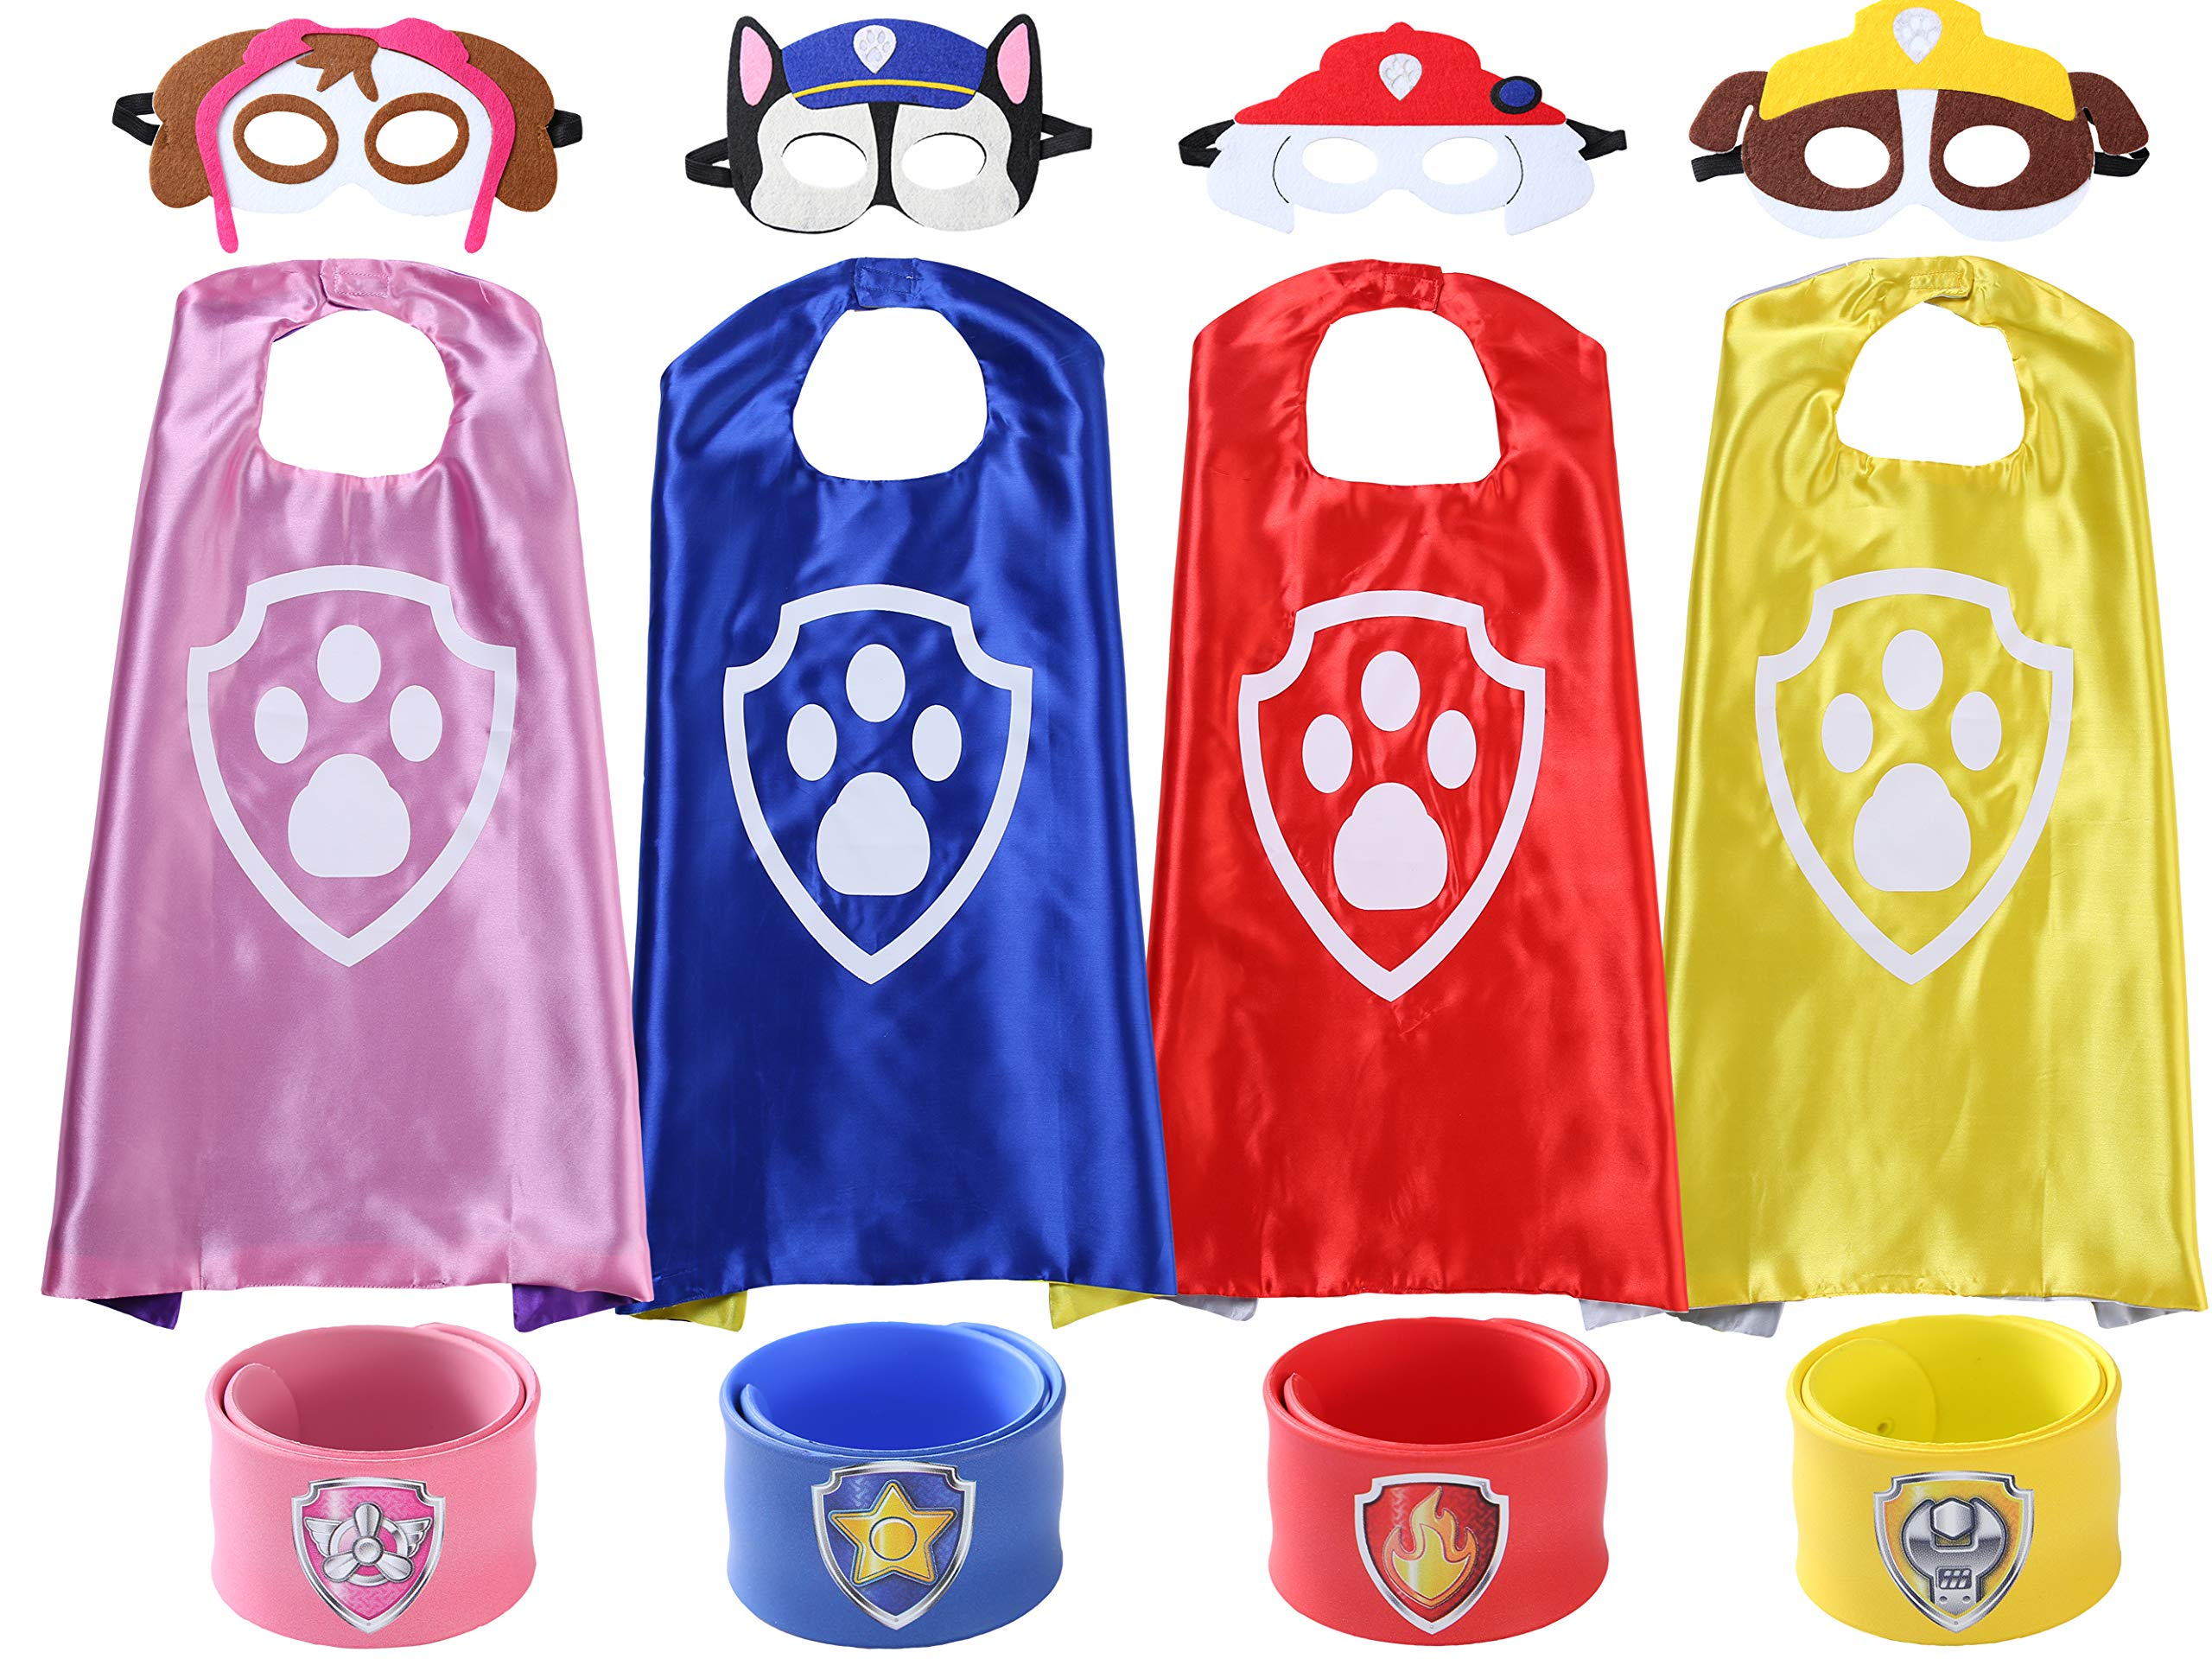 The Mass Superheros Dress Up Costumes 4 Satin Capes with Felt Mask Matching Wristbands for Kids